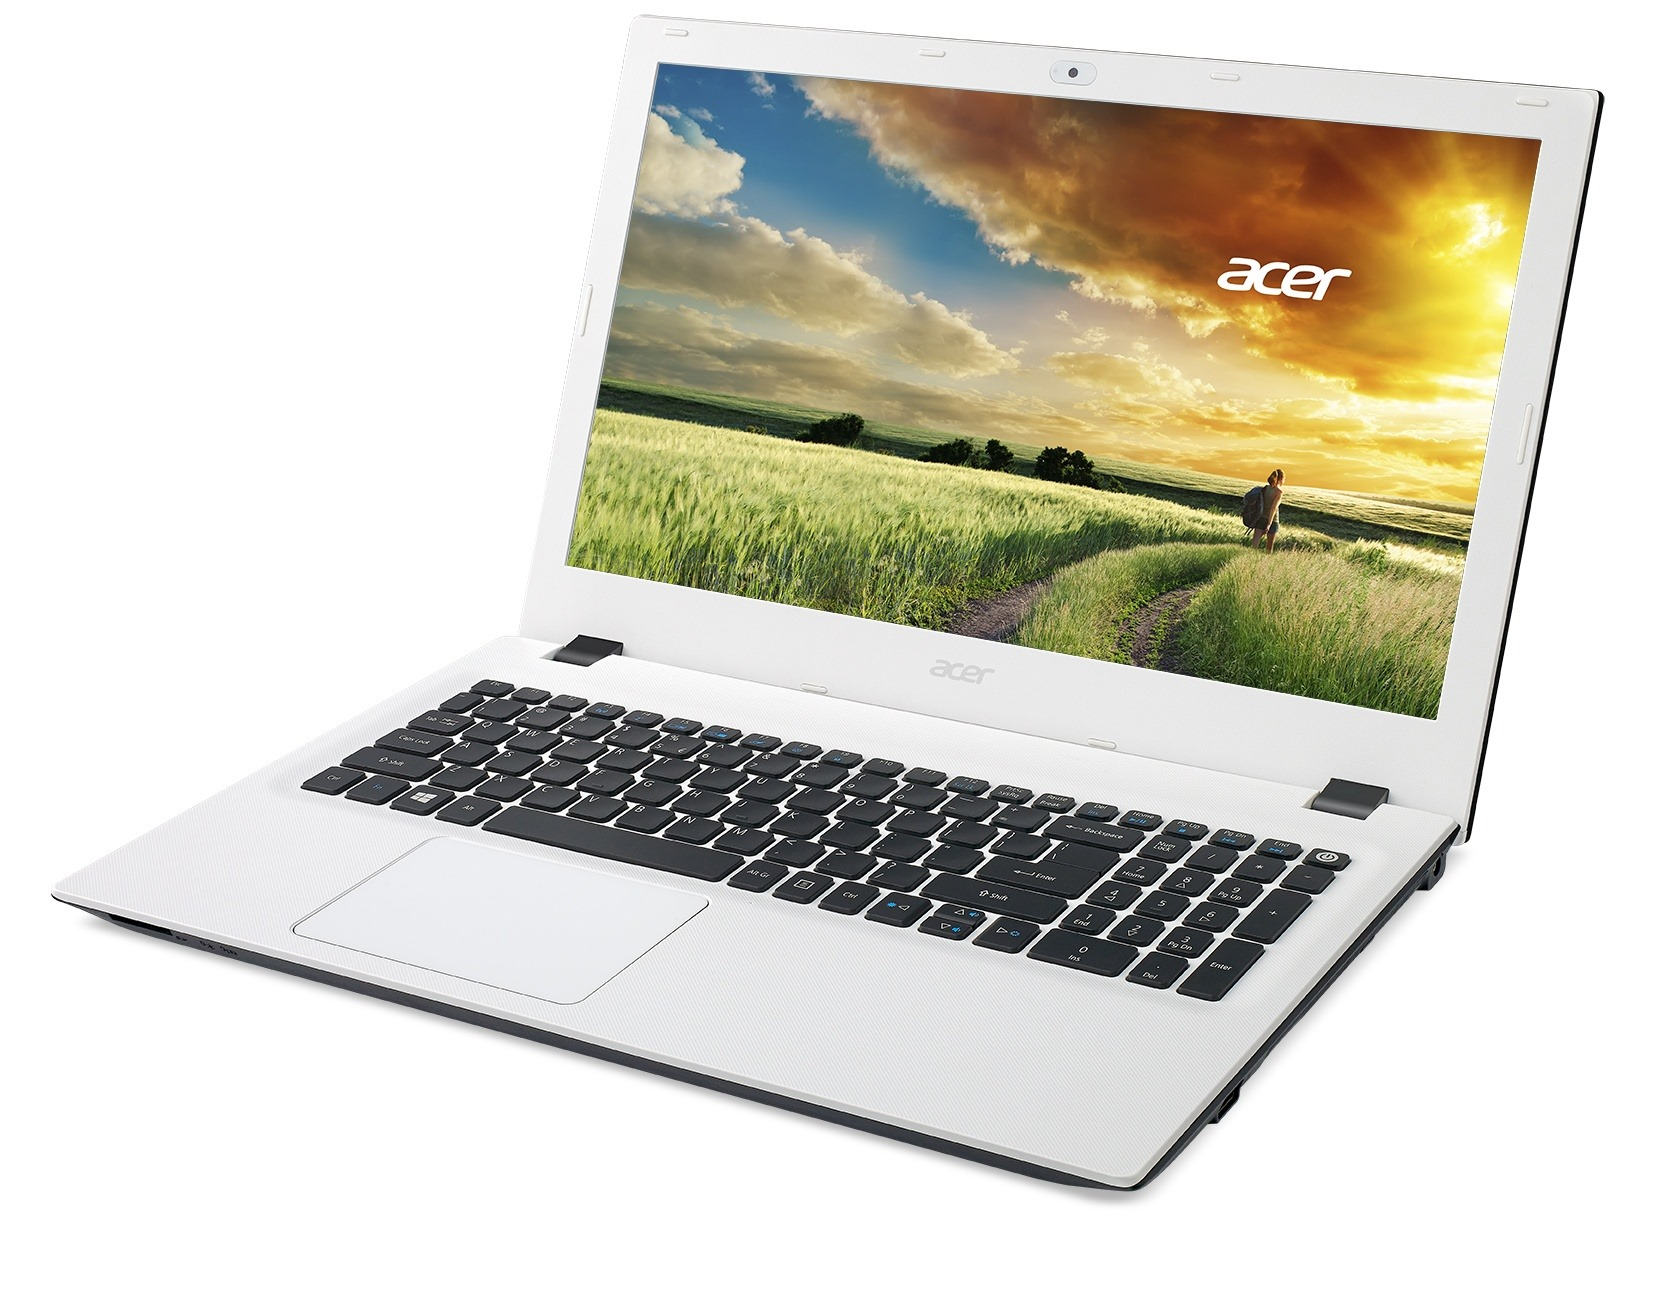 "Acer Aspire E 15 (E5-573-58YT) i5-5257U/4GB+4GB/256GB SSD+N/HD Graphics/DVD-RW/15,6"" FHD/Windows 8.1/Cotton White"